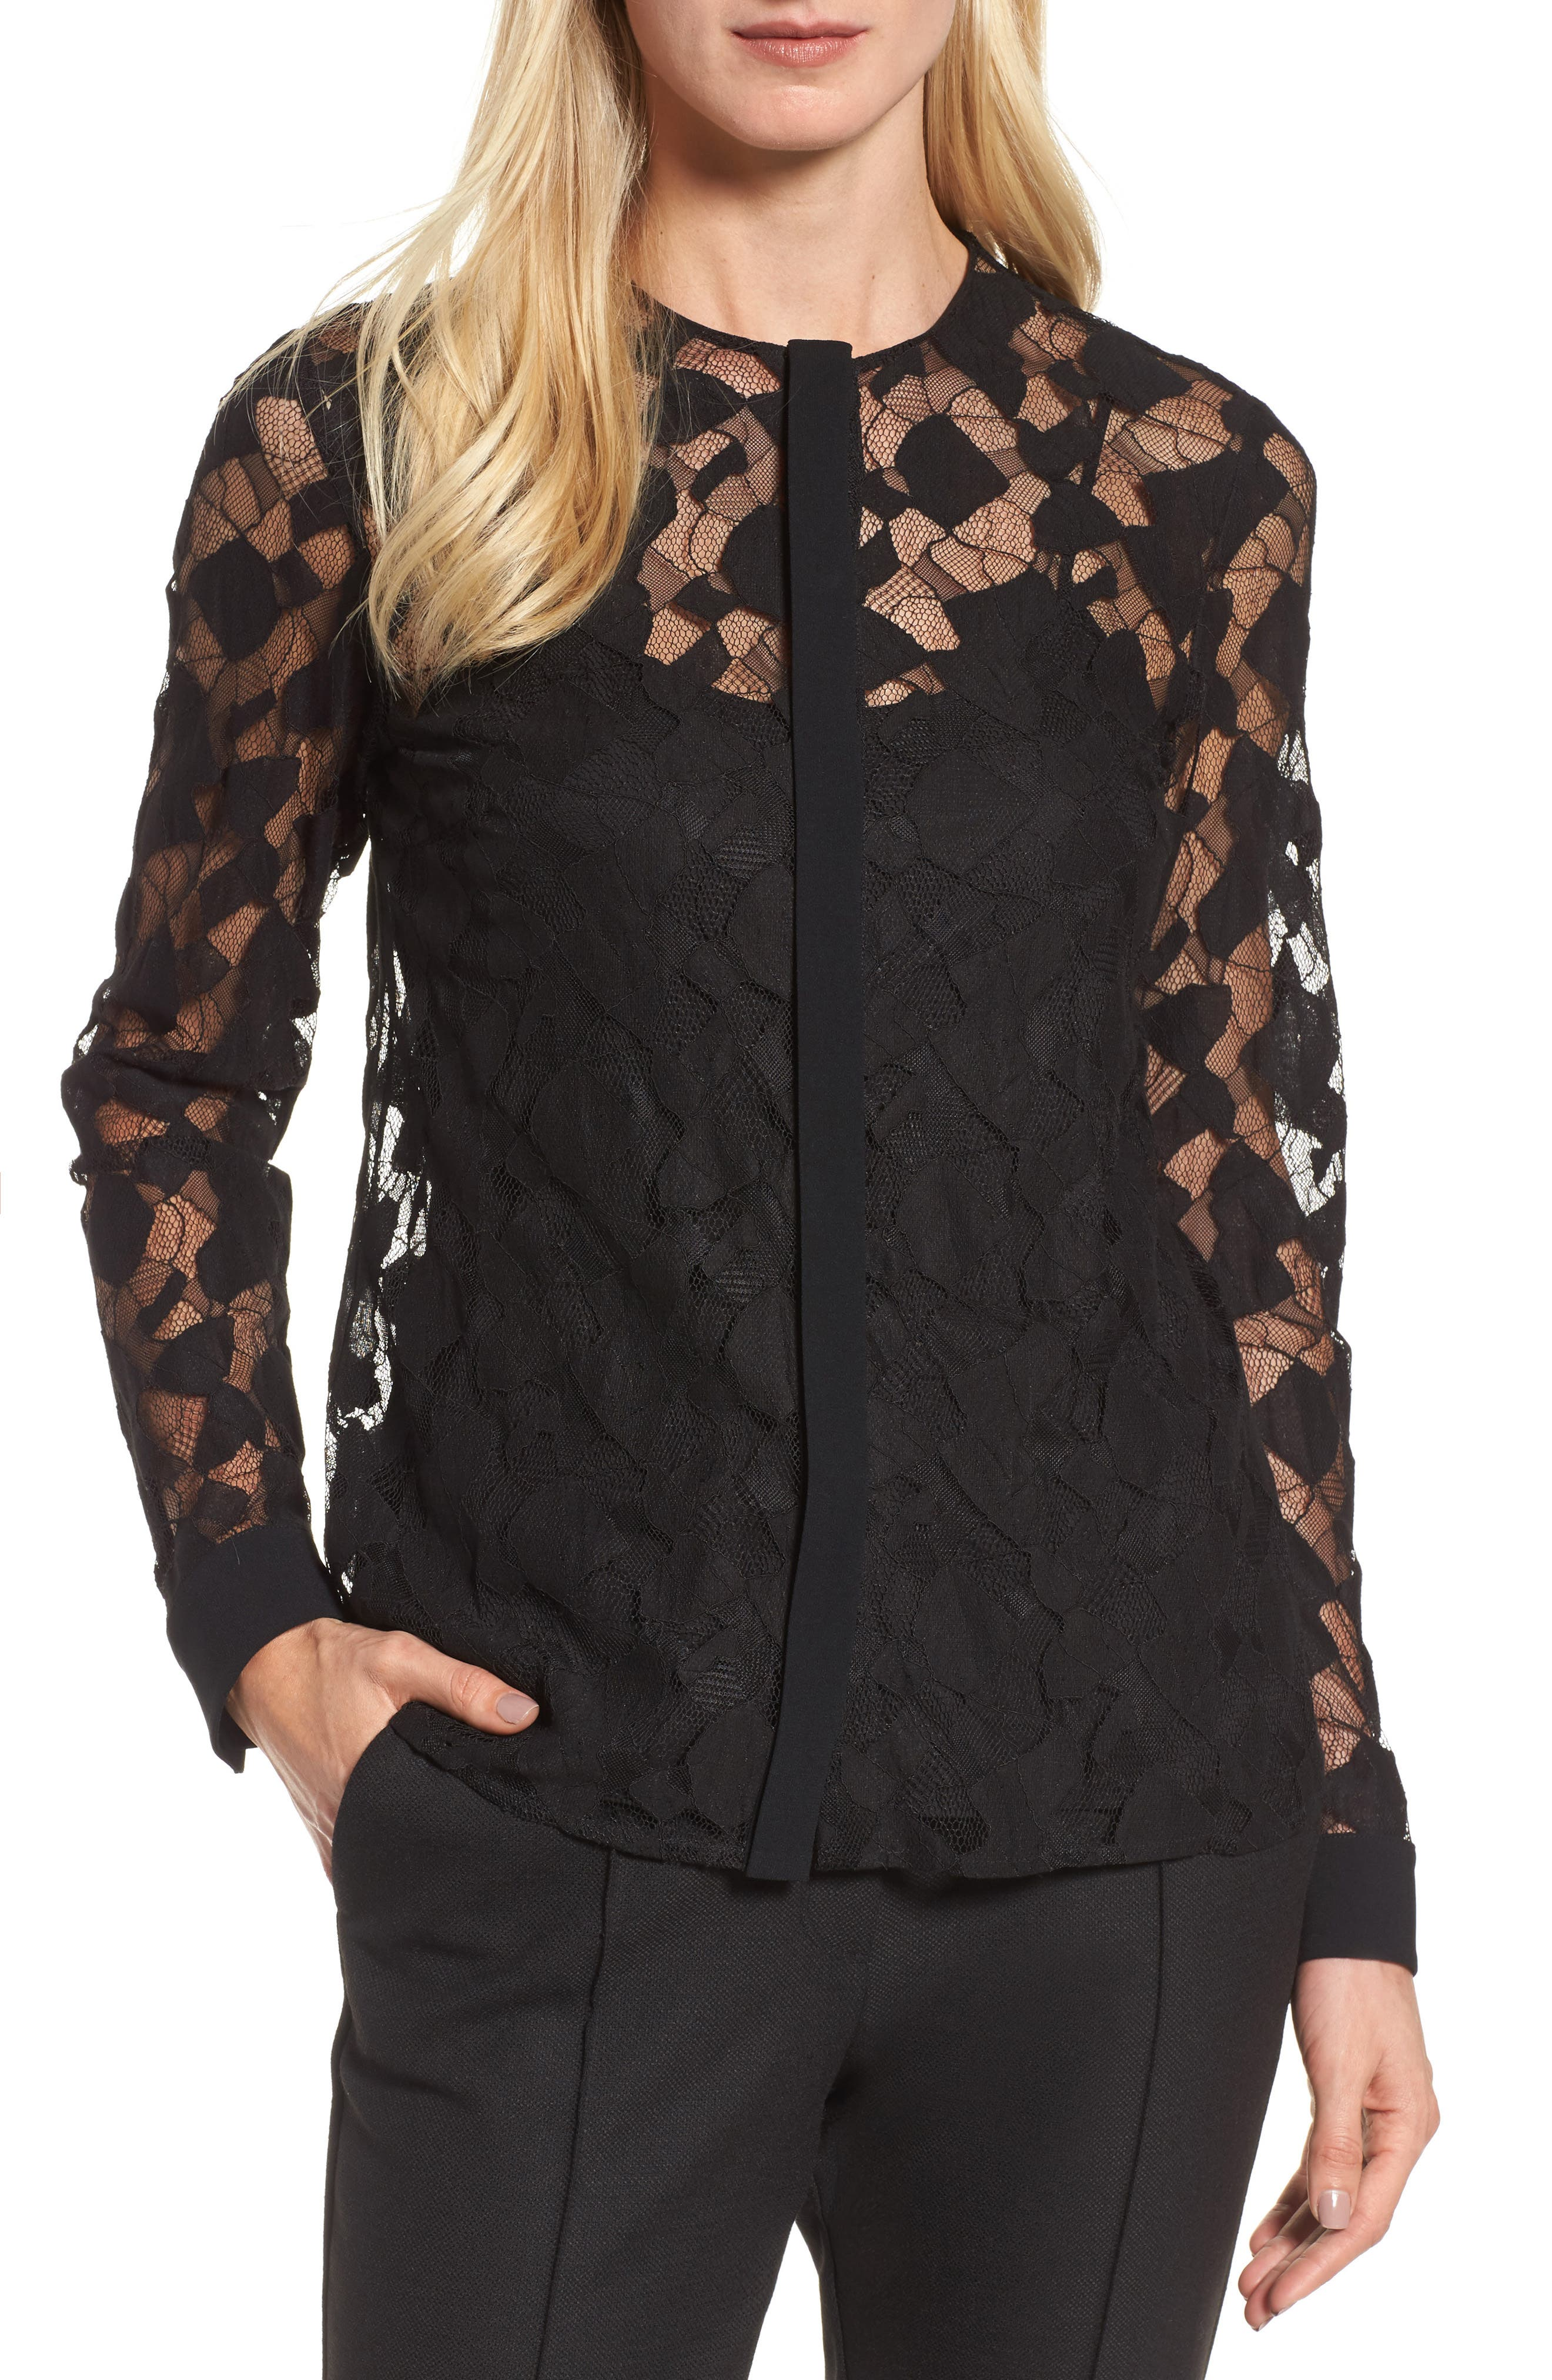 Banela Lace Blouse,                         Main,                         color,